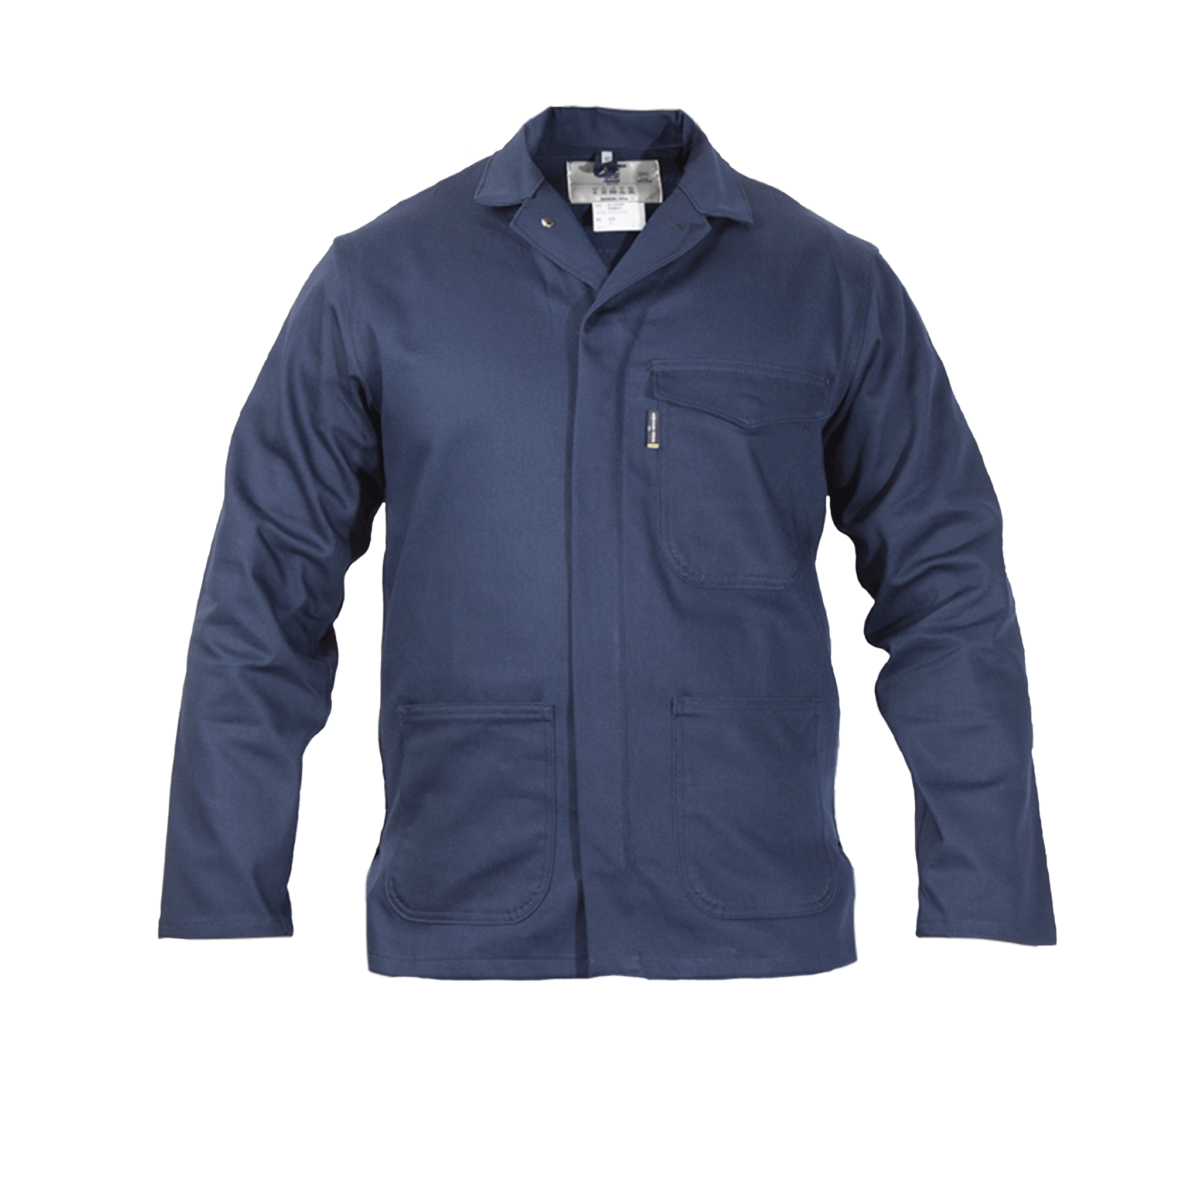 Sweet-Orr Navy Blue Continental Overall Jacket